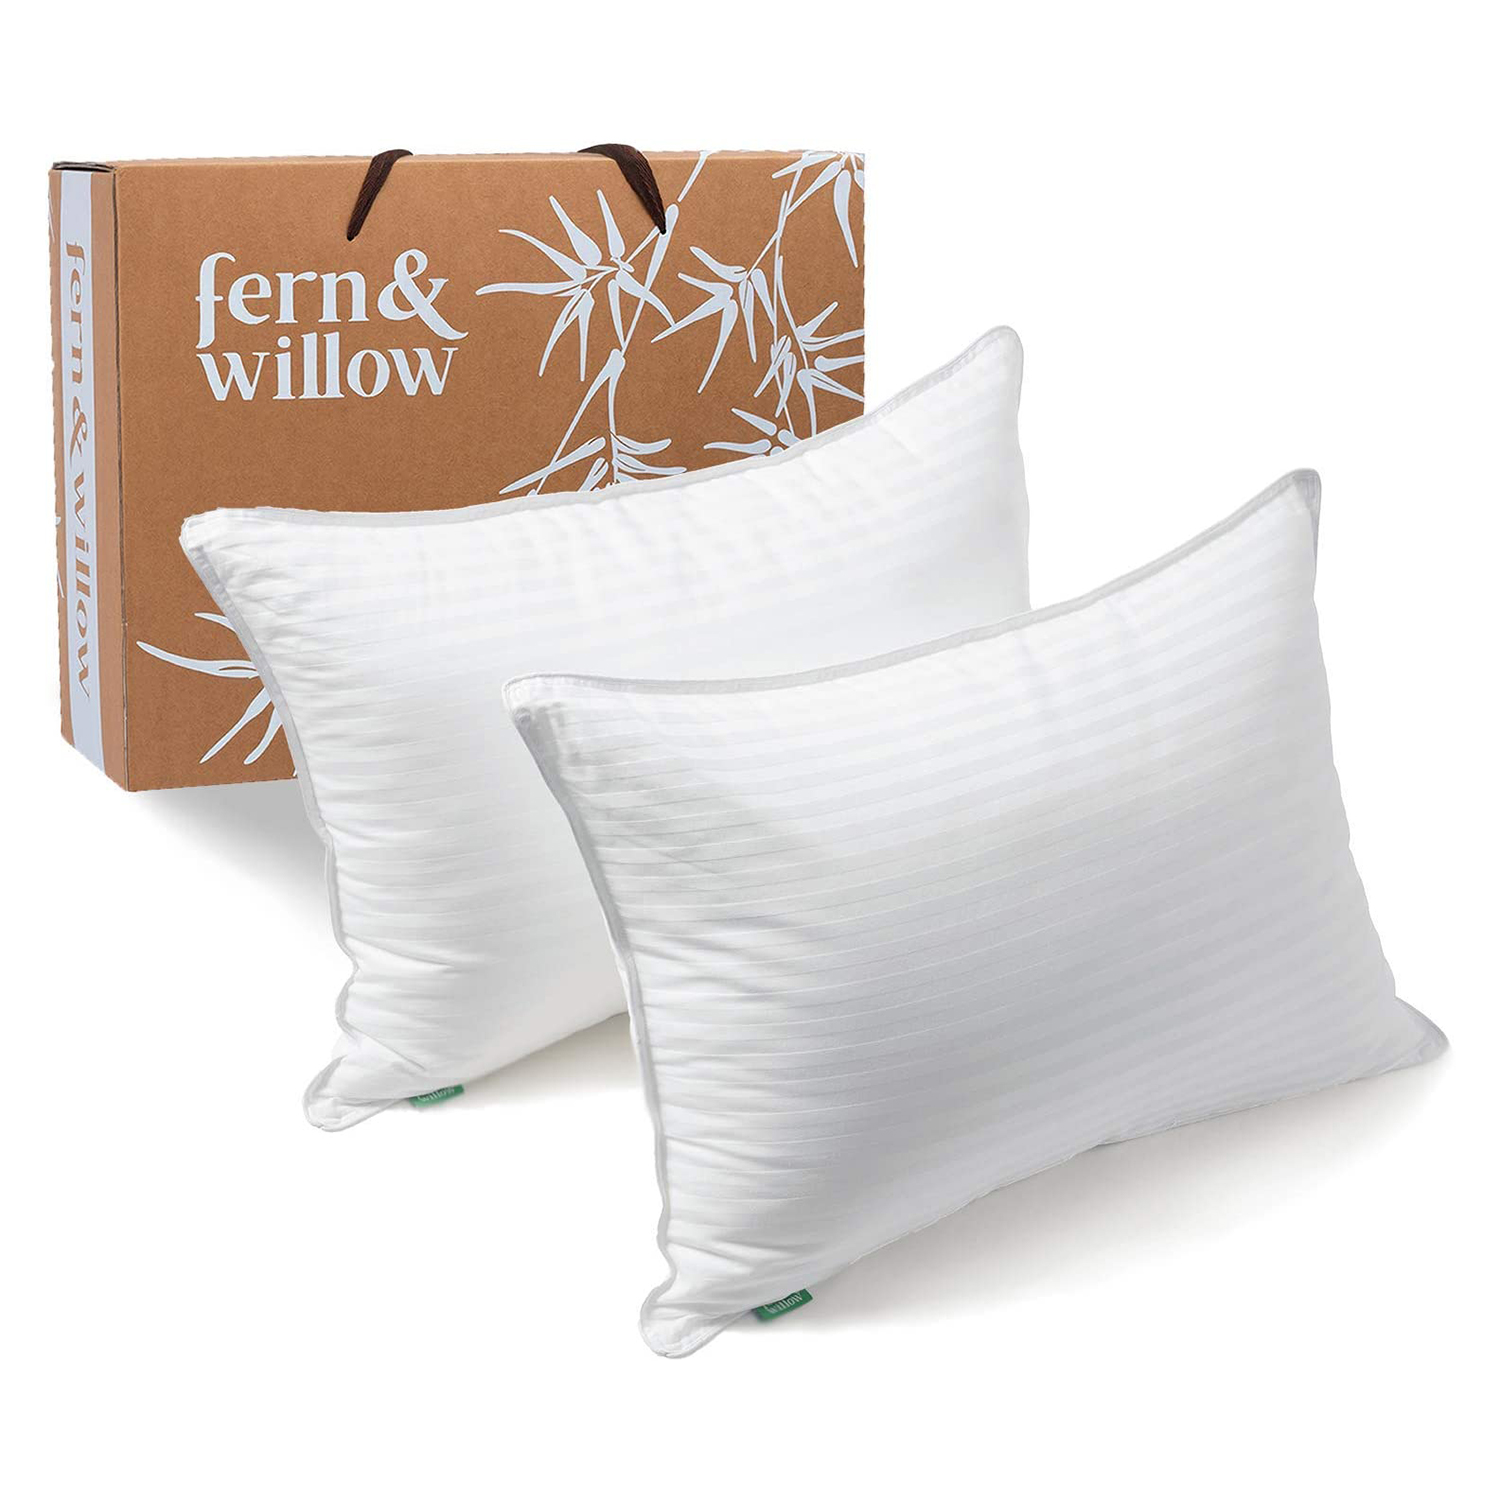 Fern and Willow Pillows for Sleeping Queen Size, 2 Pack